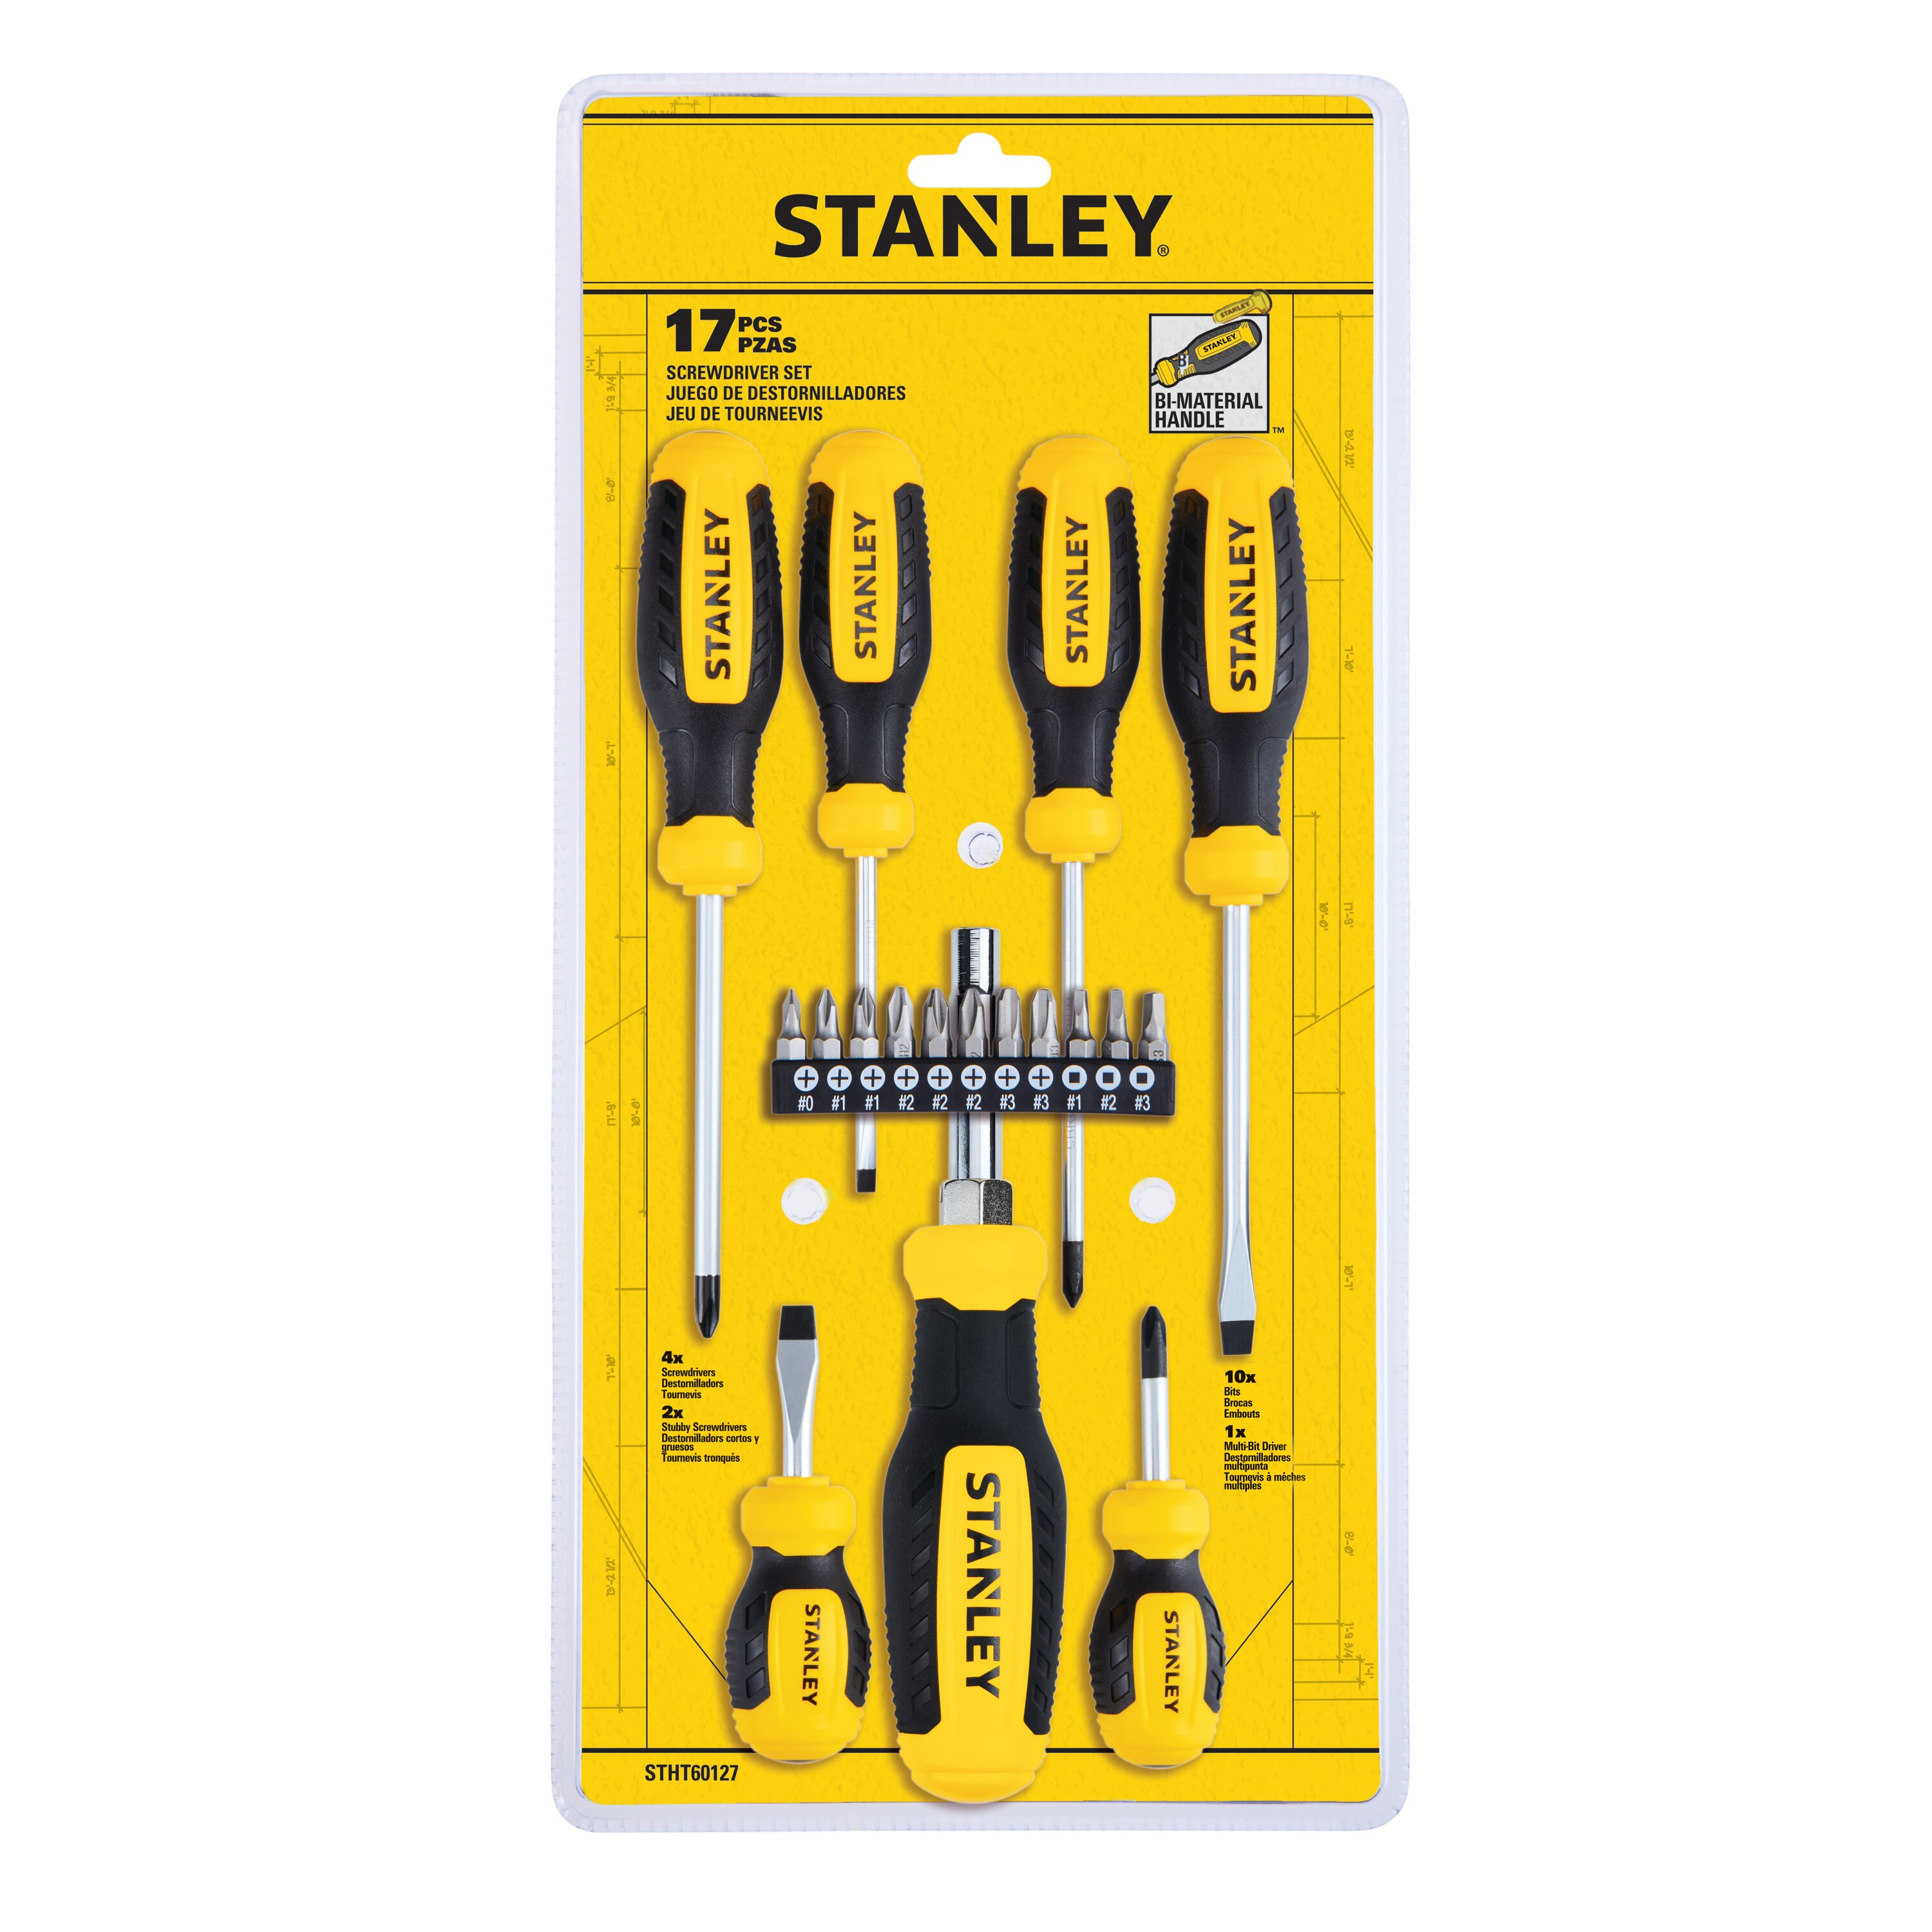 Stanley Tools - 17 pc Screwdriver Set - STHT60127